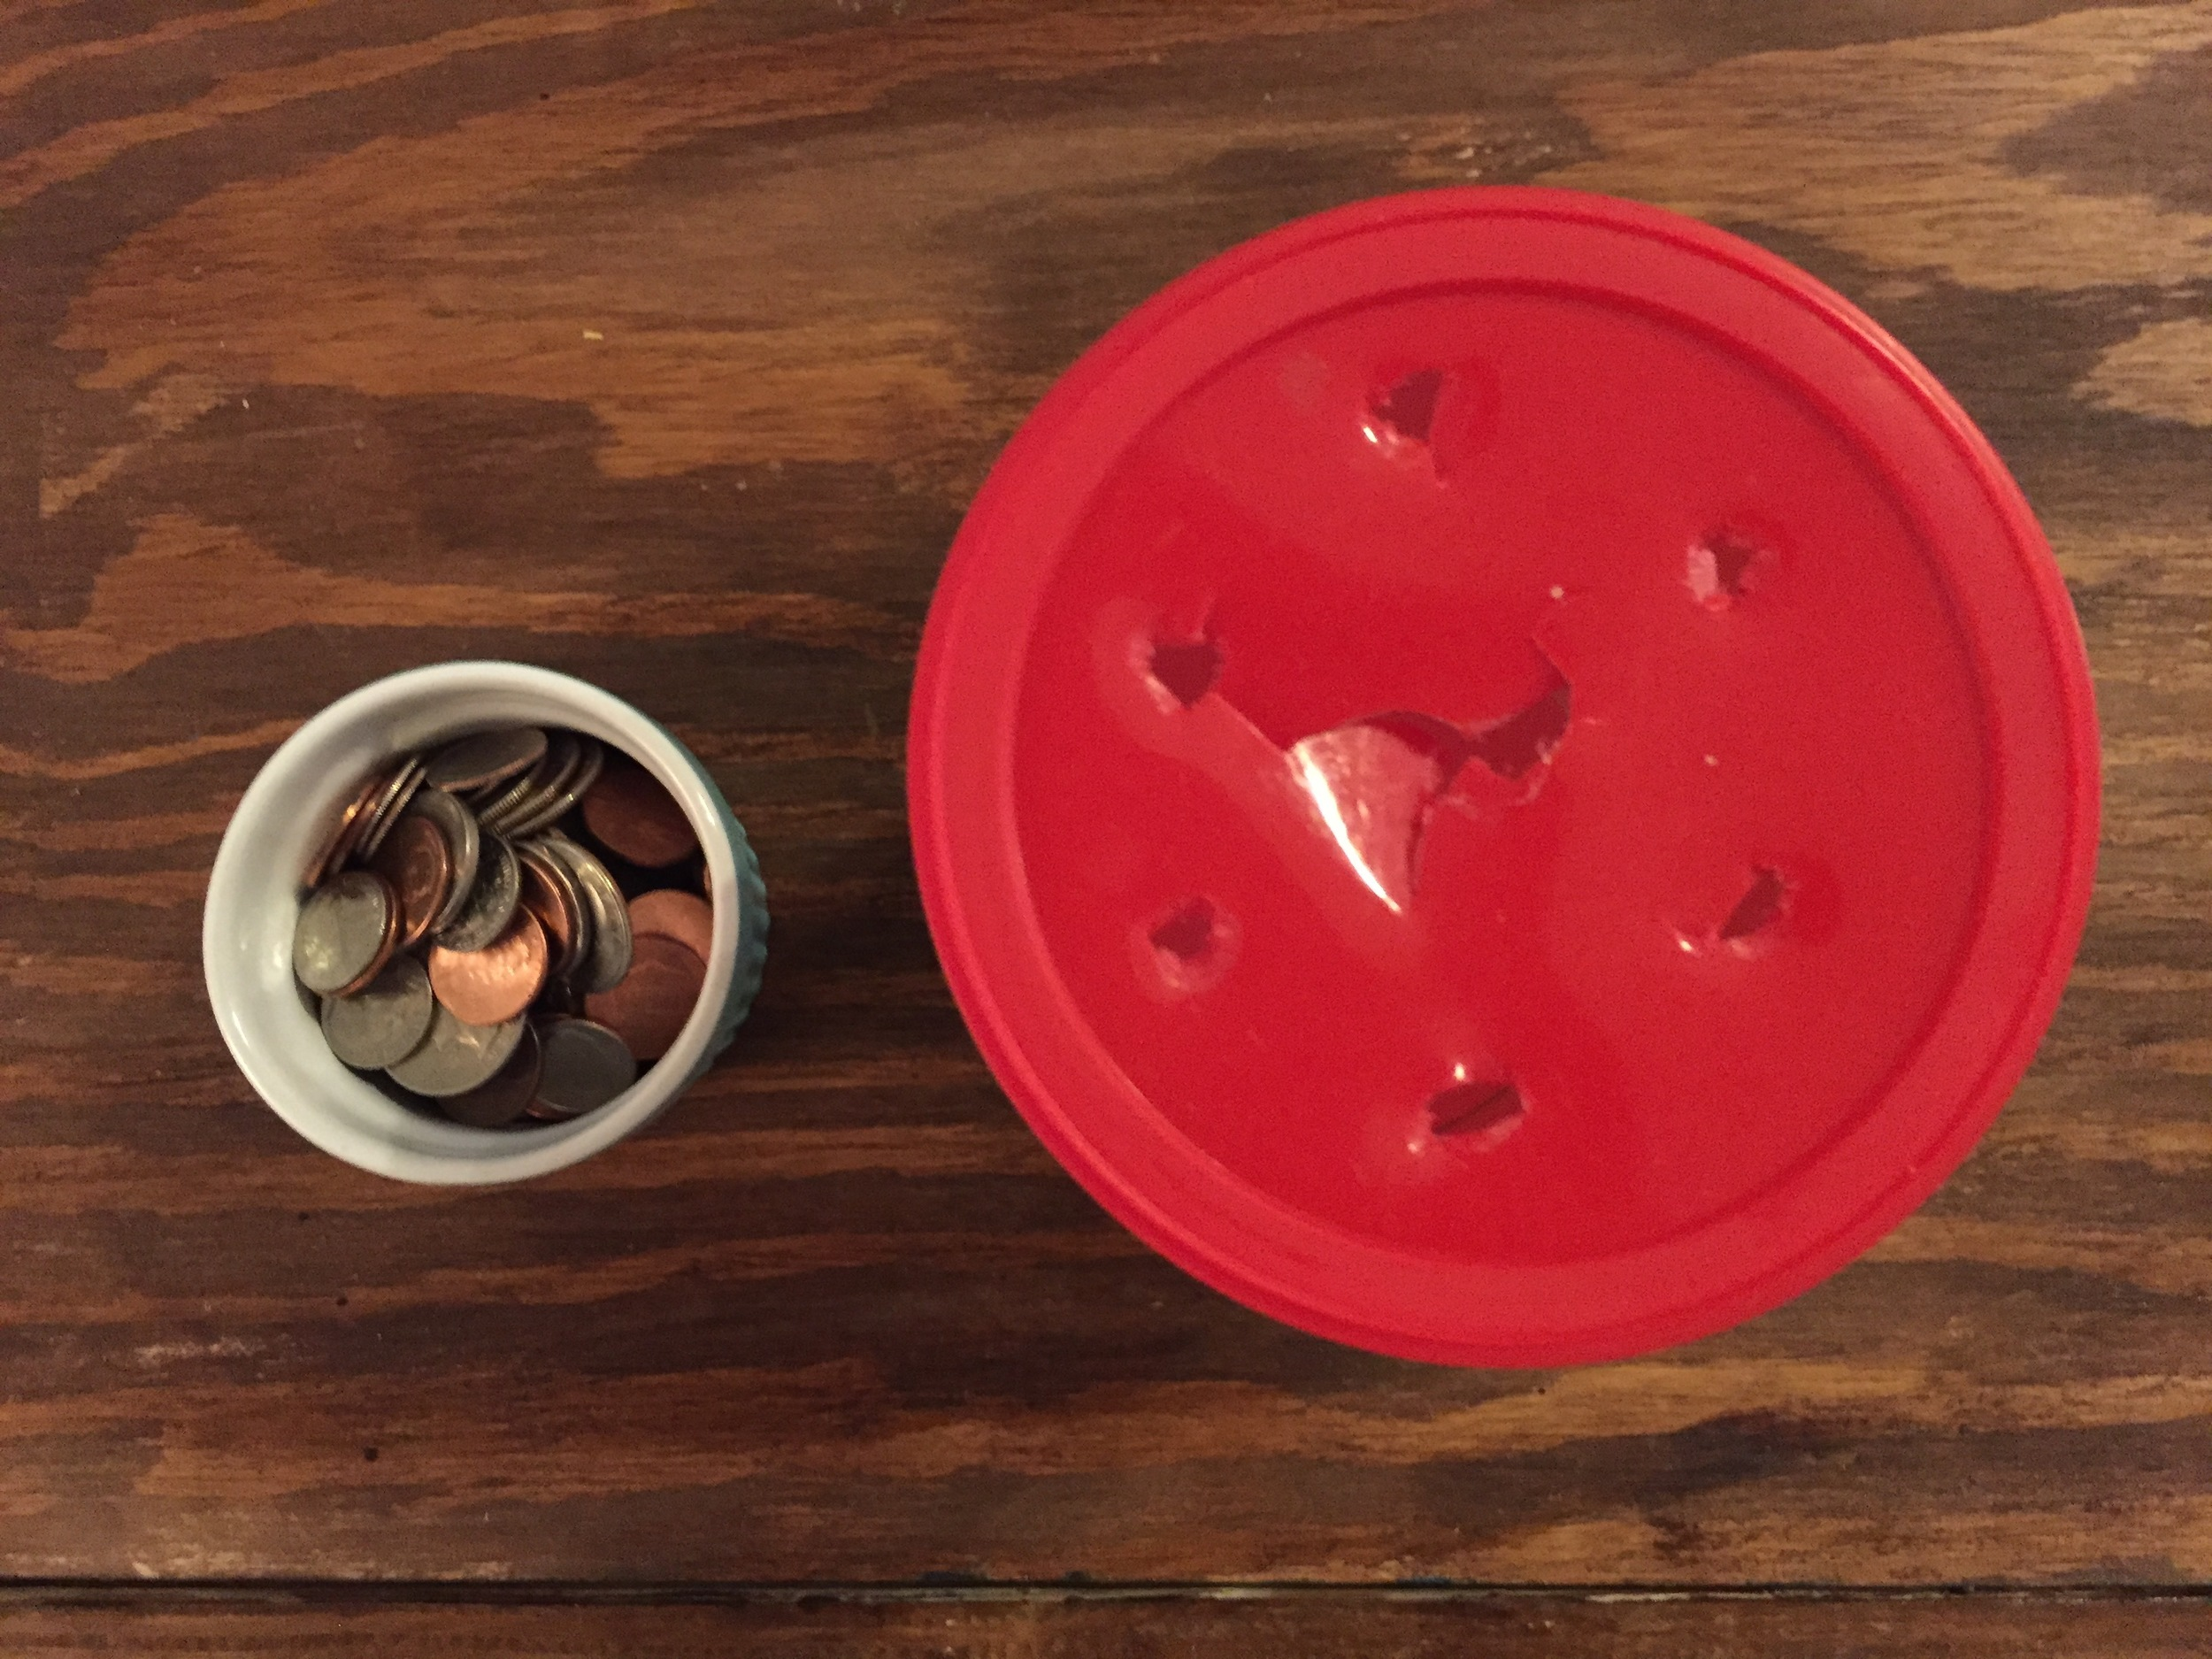 Coins in a coin bank